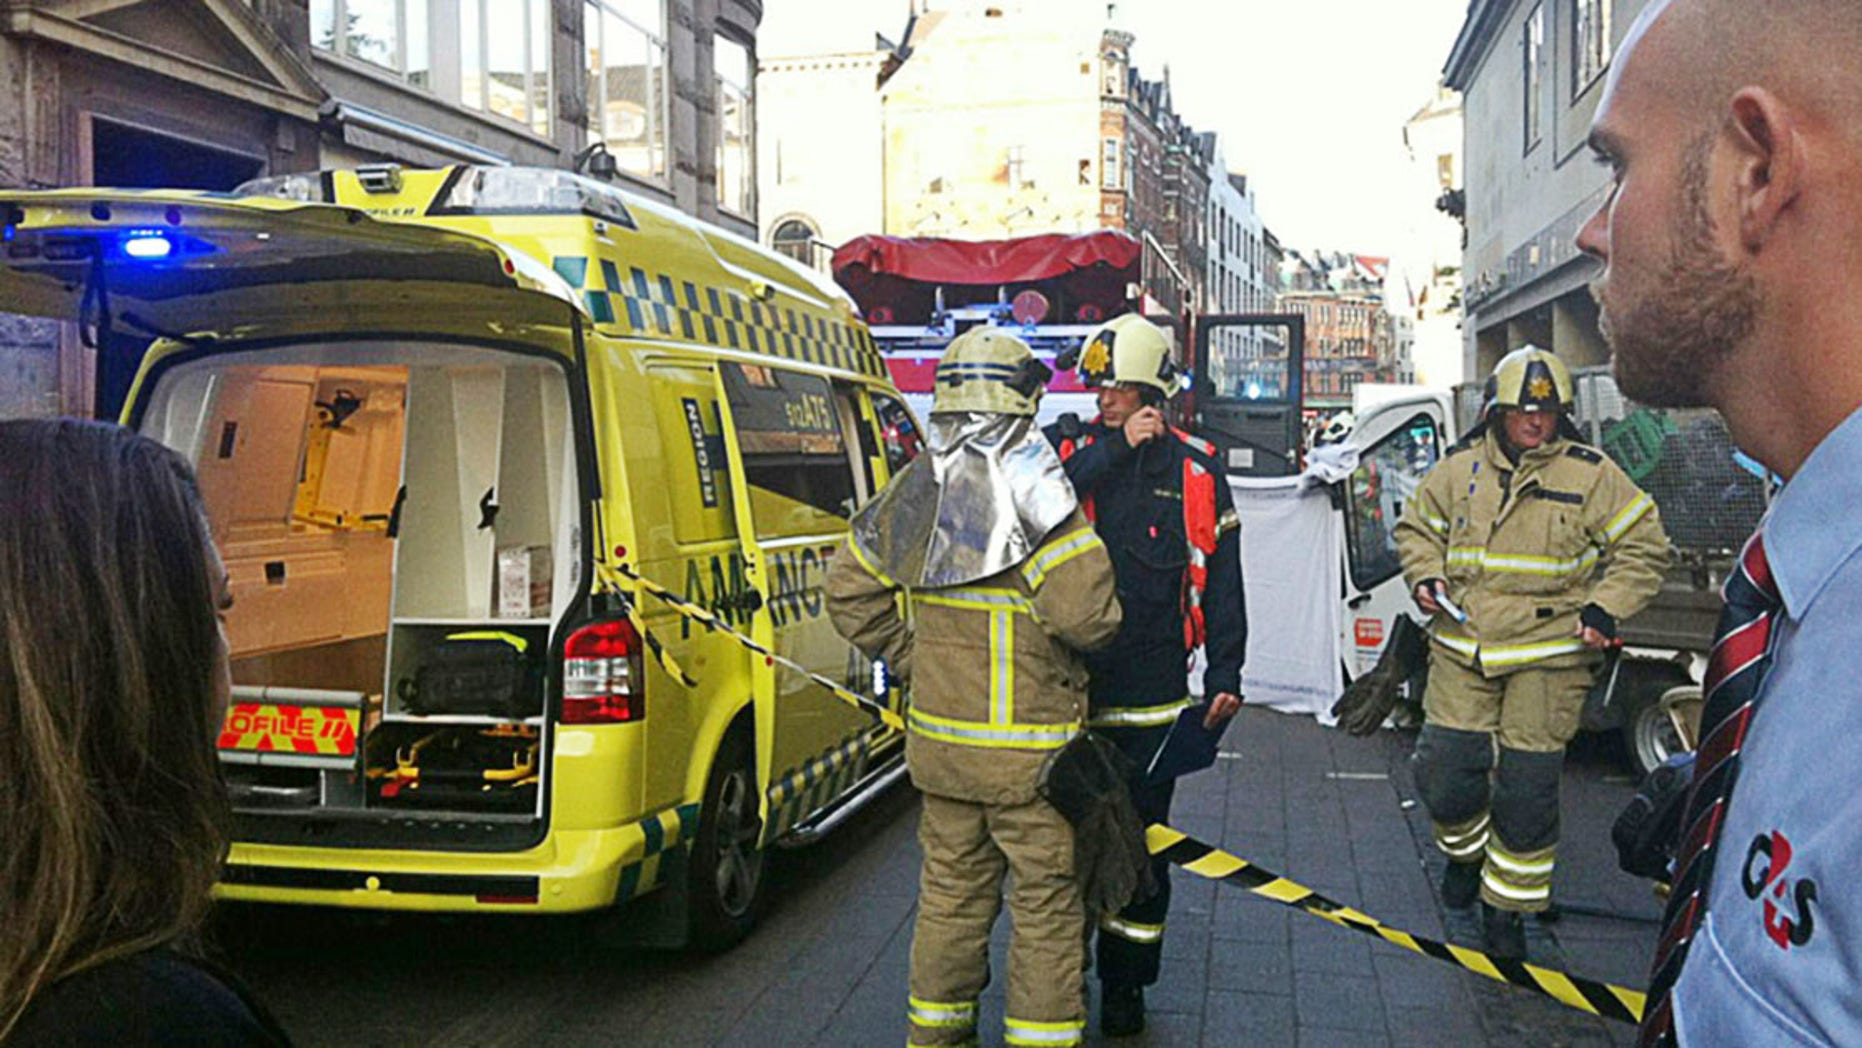 Firemen at the scene after a garbage truck went out of control and killed an American tourist and wounded several others in an incident on Copenhagen's pedestrian street Stroeget, Wednesday, Aug. 29, 2012. (AP Photo / Camilla Cornelius/POLFOTO) DENMARK OUT